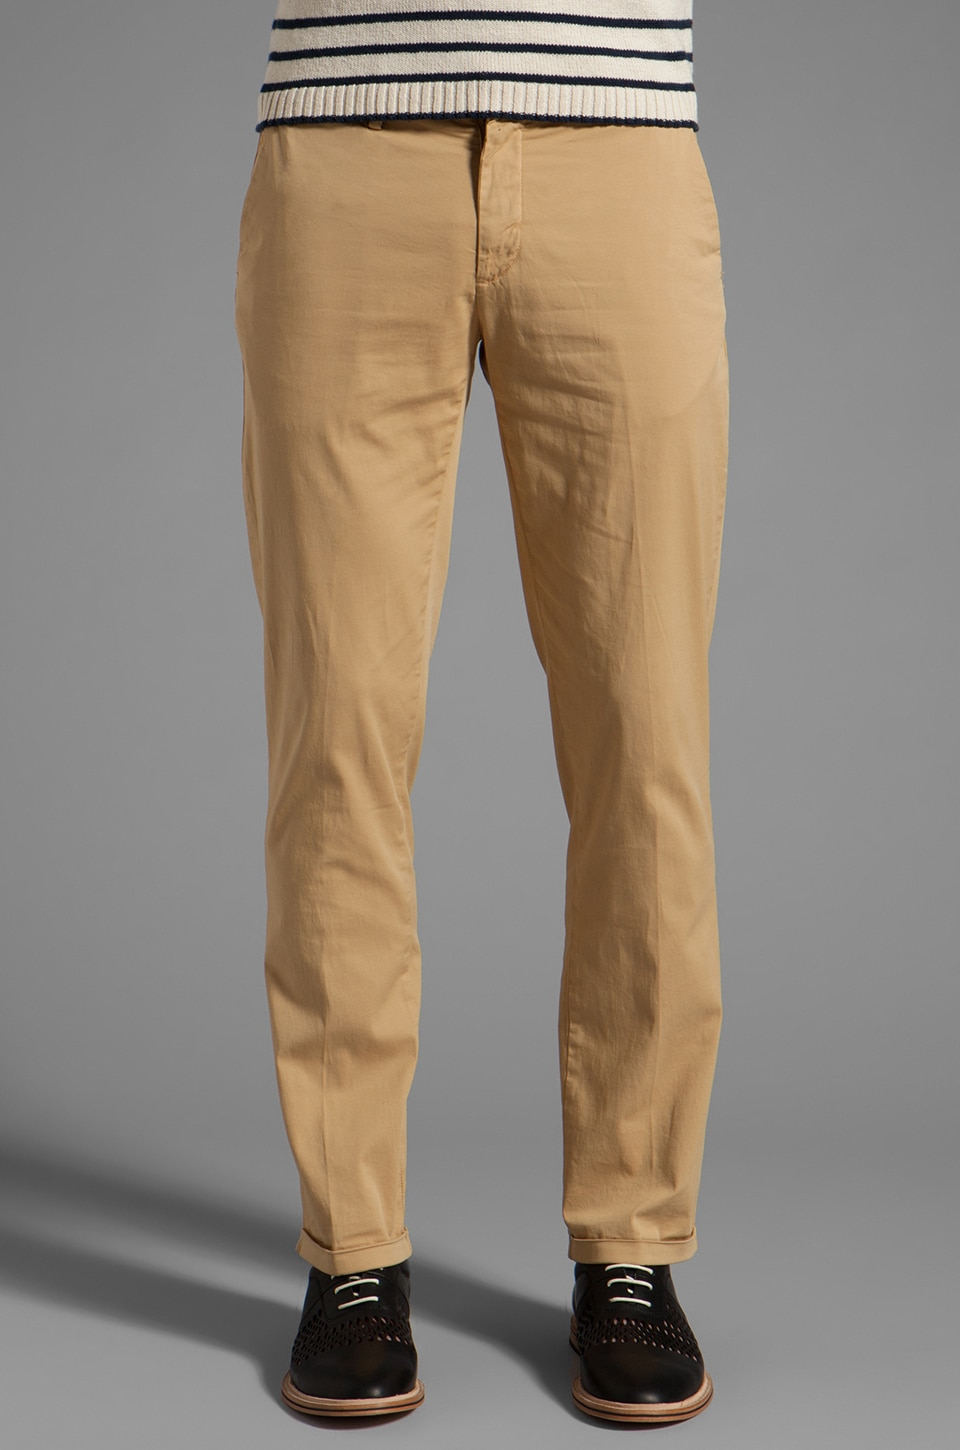 GANT Rugger Summer Chino in Bisquit